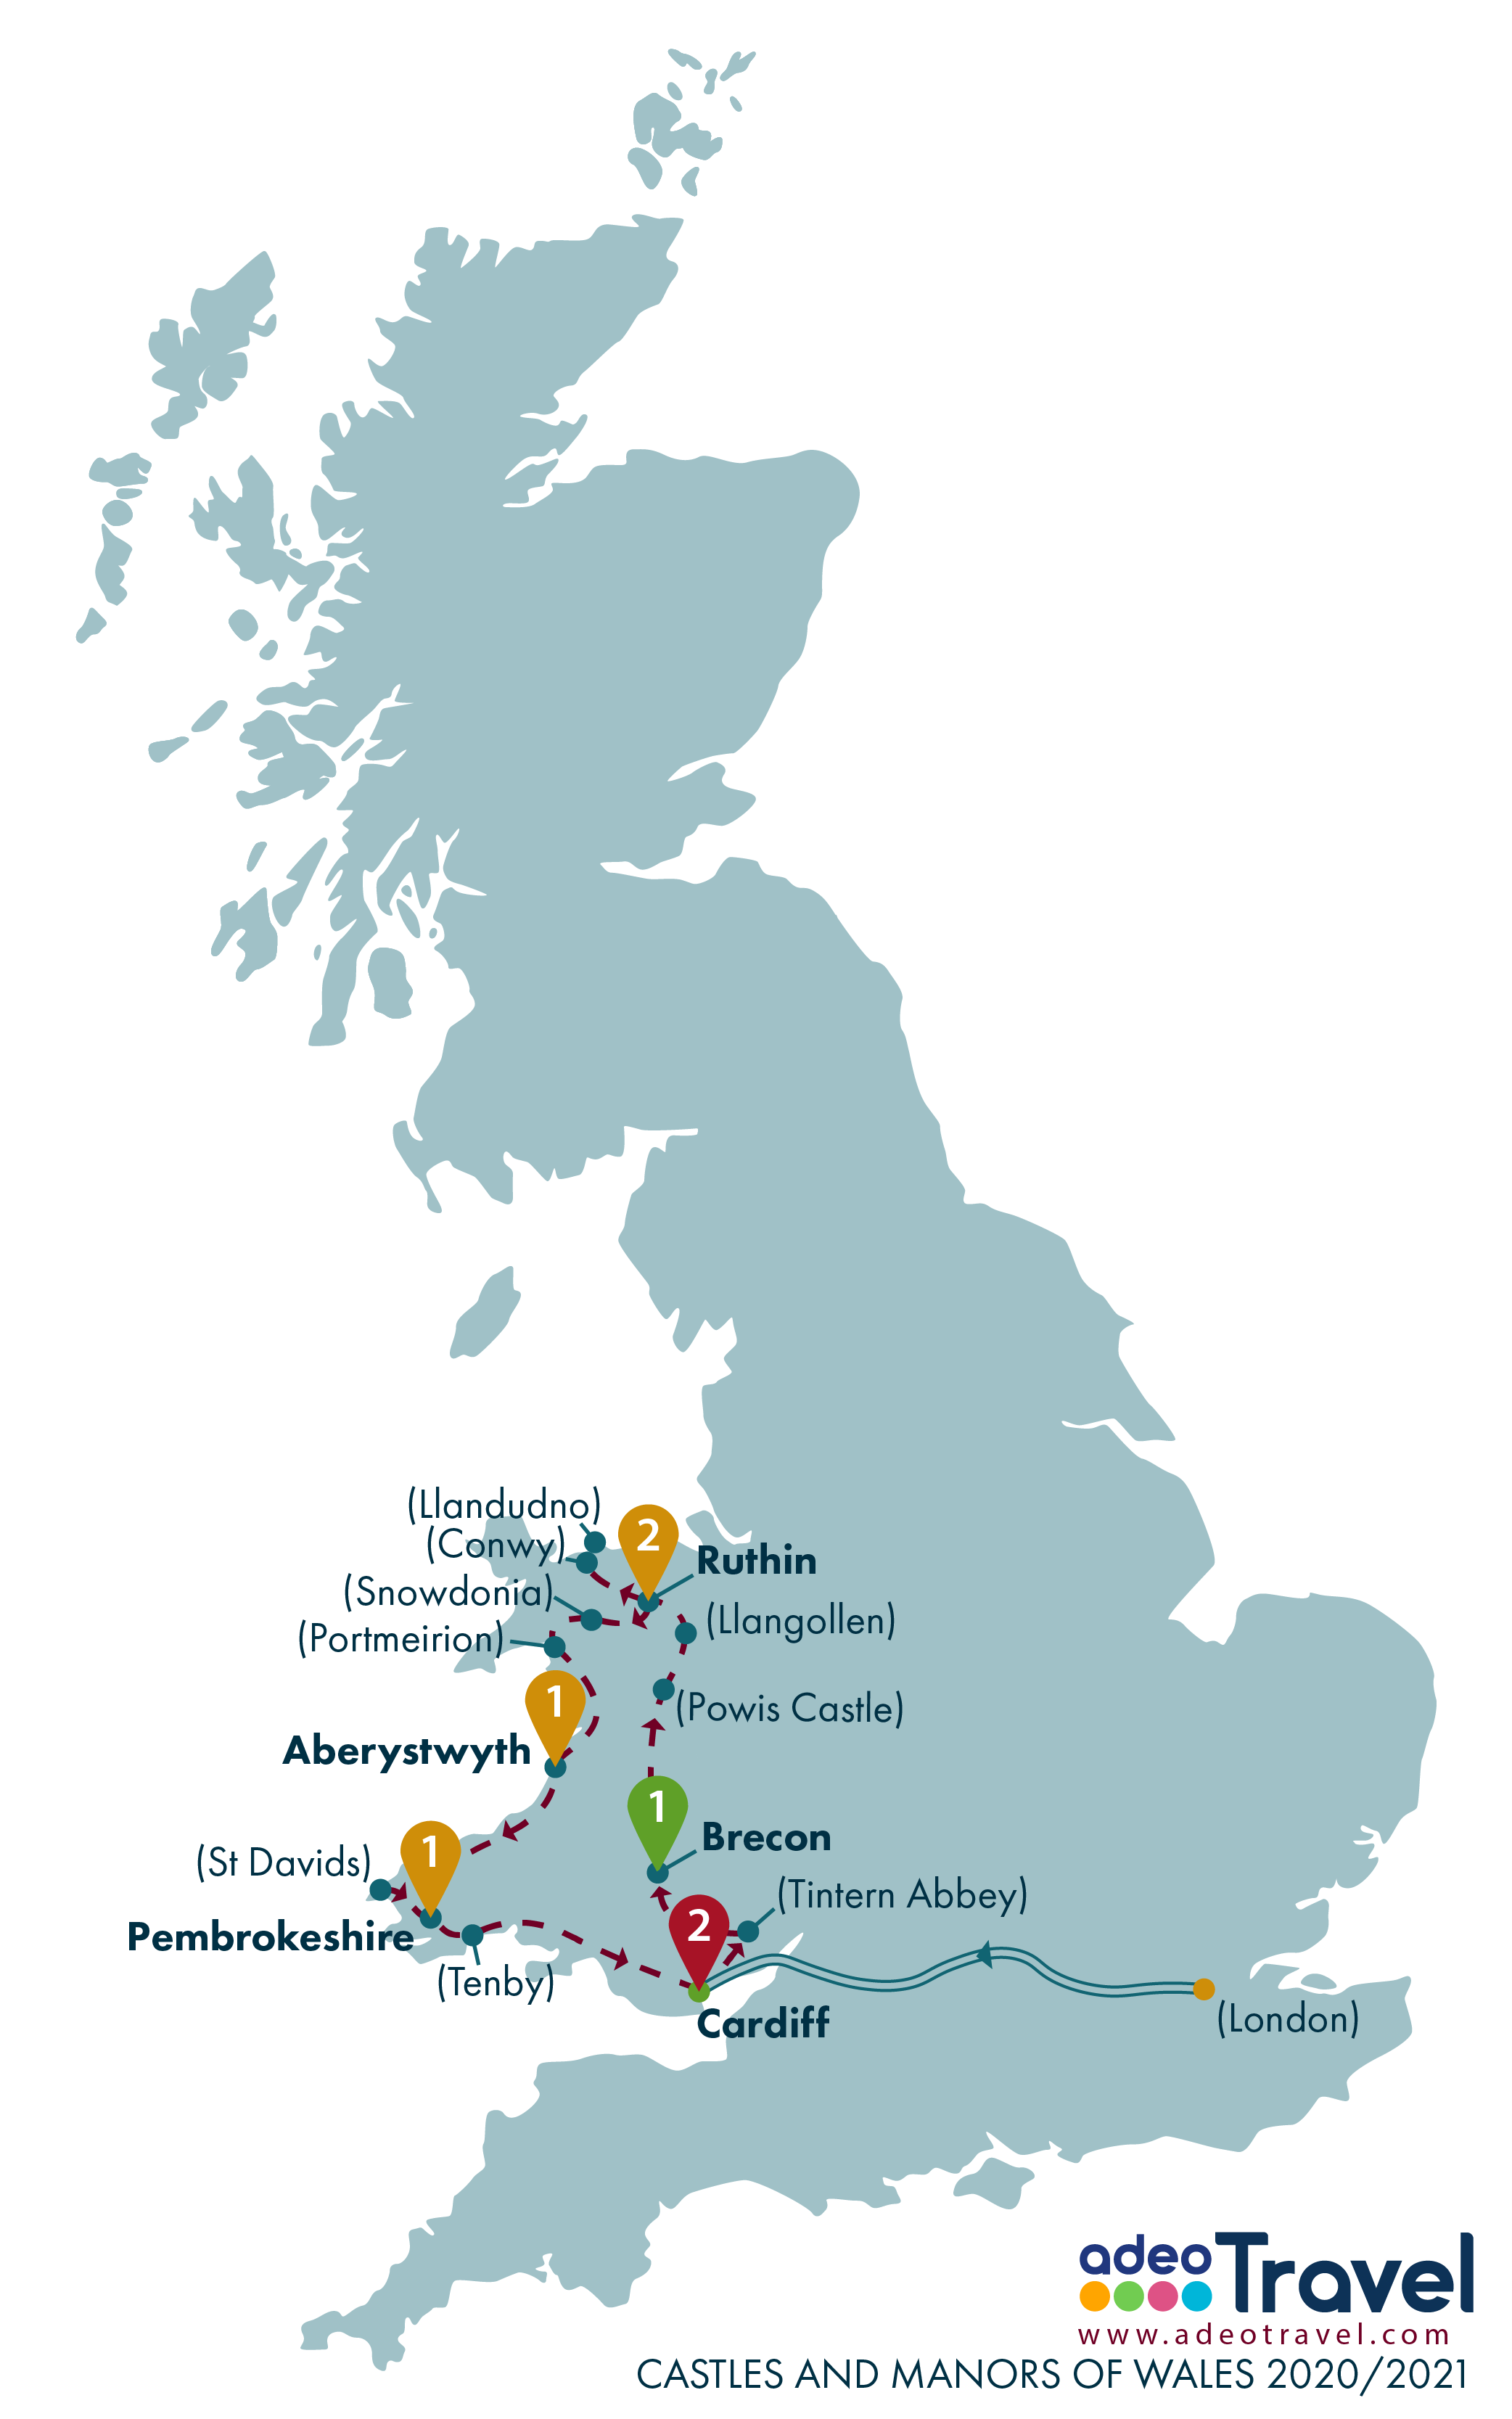 Map - Casltes and Manors of Wales 2020-2021